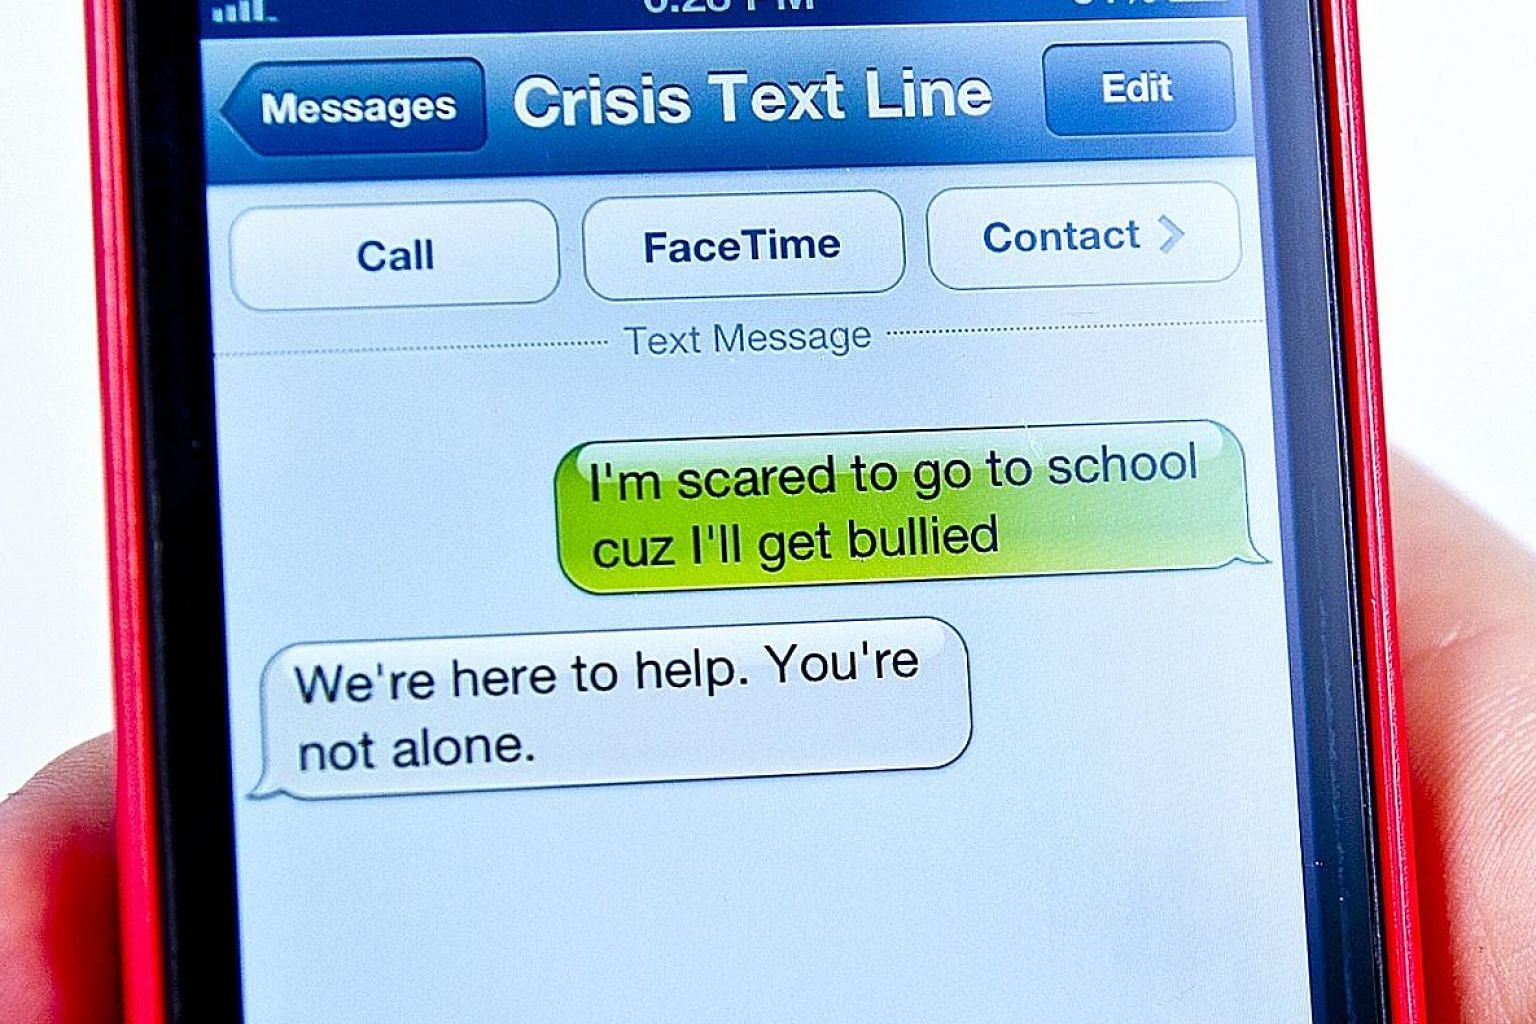 Through the volume of conversations, Crisis Text Line has gained insights into hard-to-quantify mental health topics.